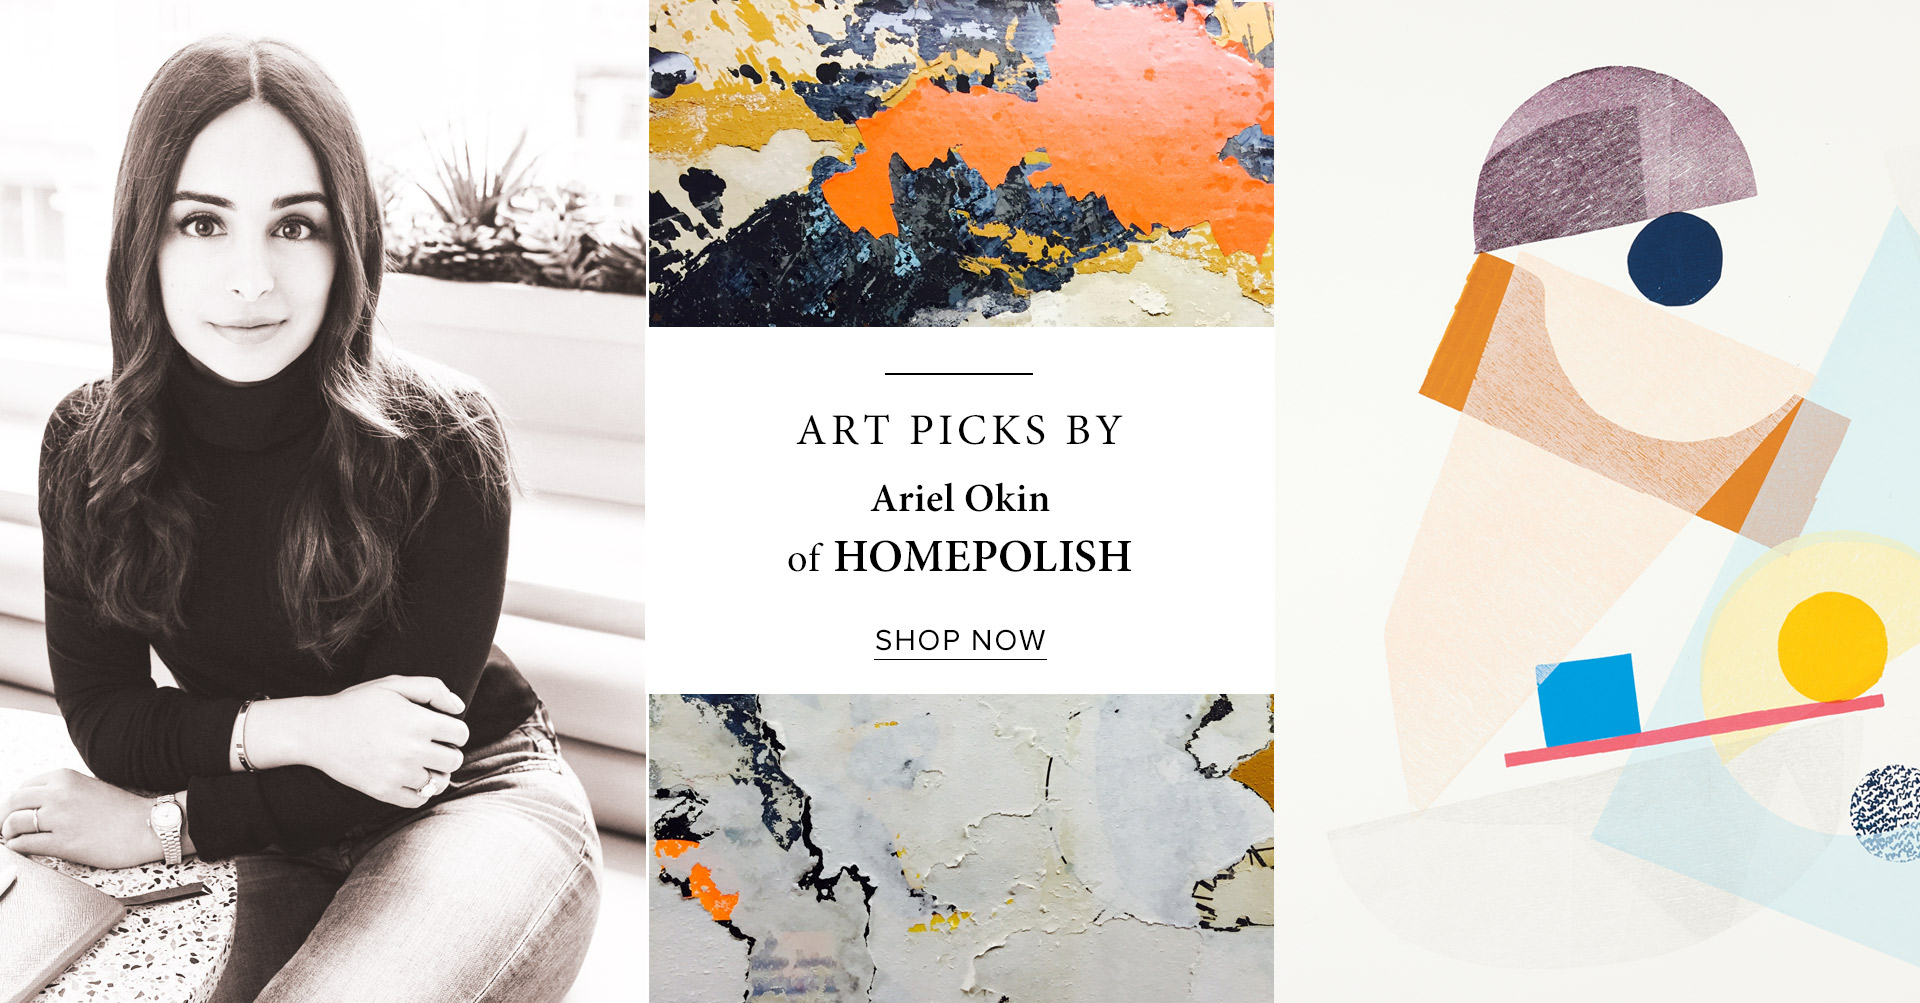 Art Picks by Ariel Okin of Homepolish